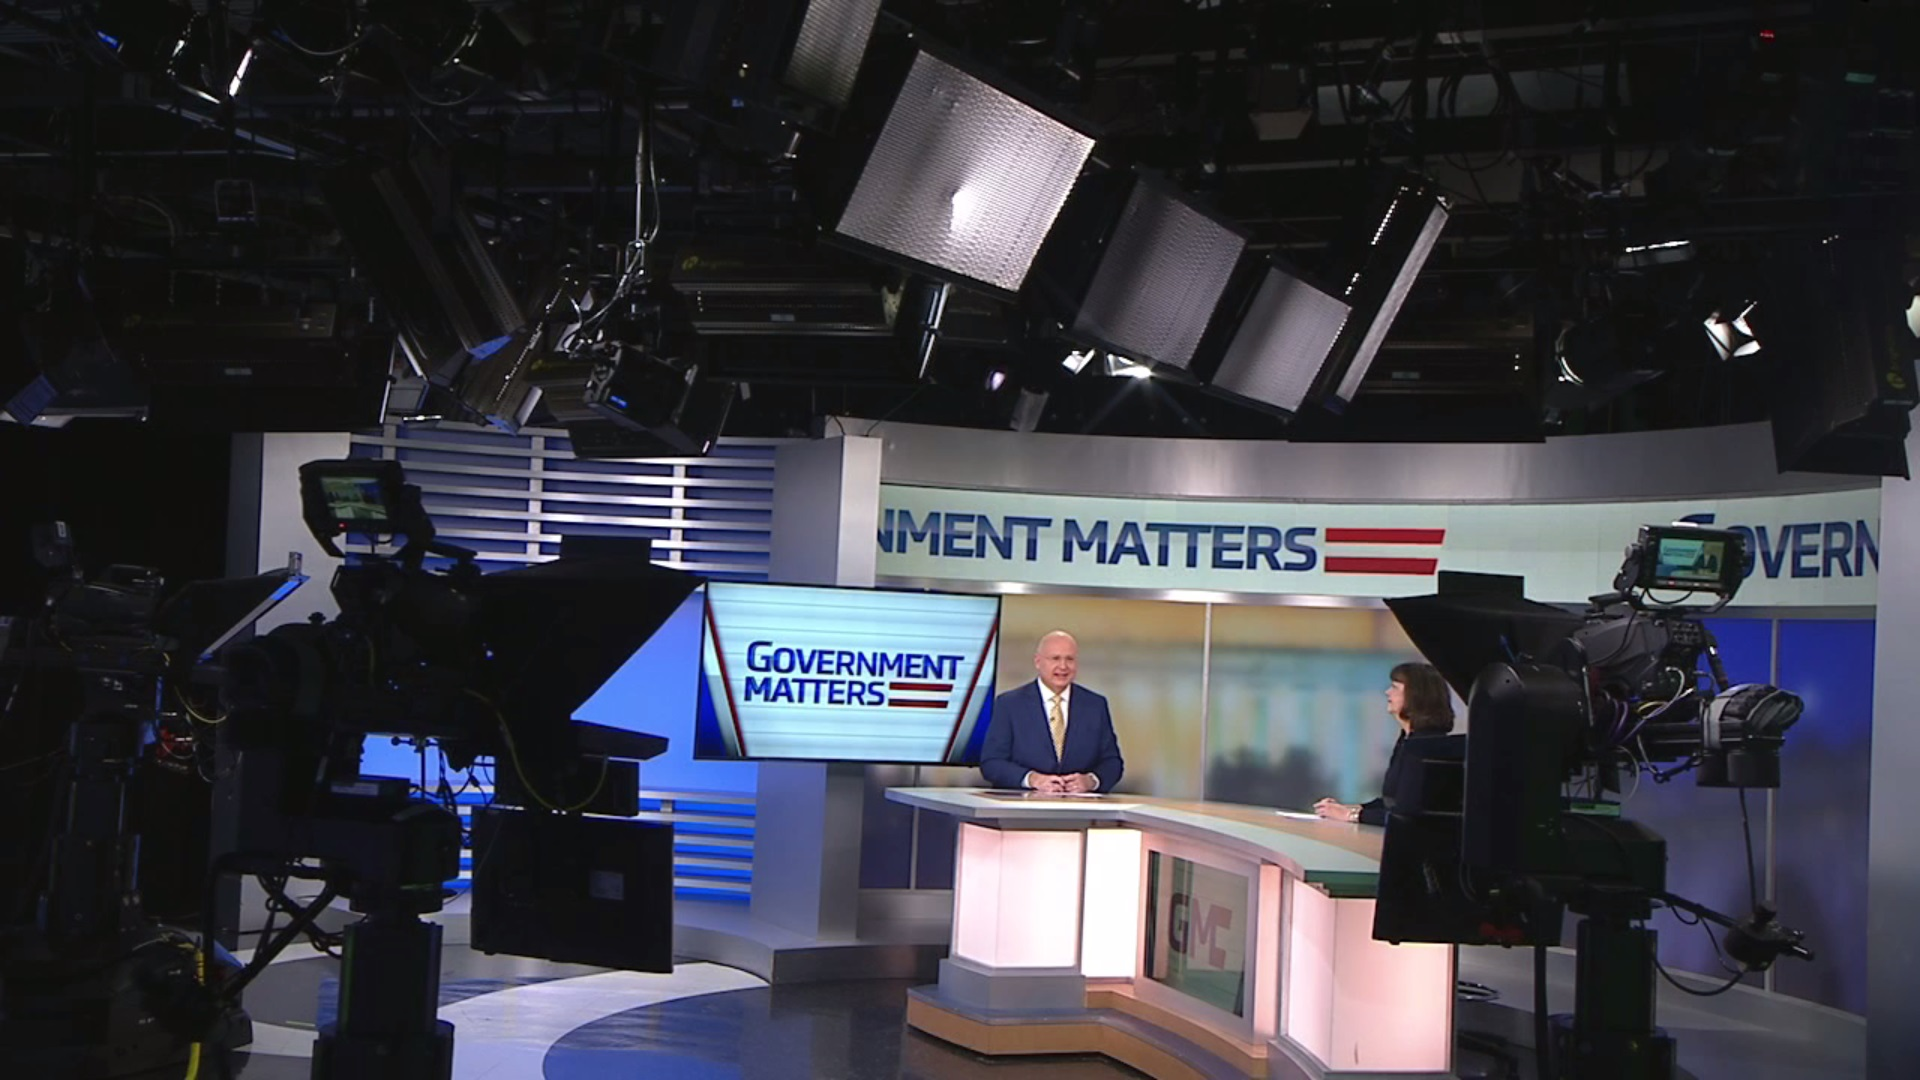 Government Matters (Full Show) – March 5, 2018